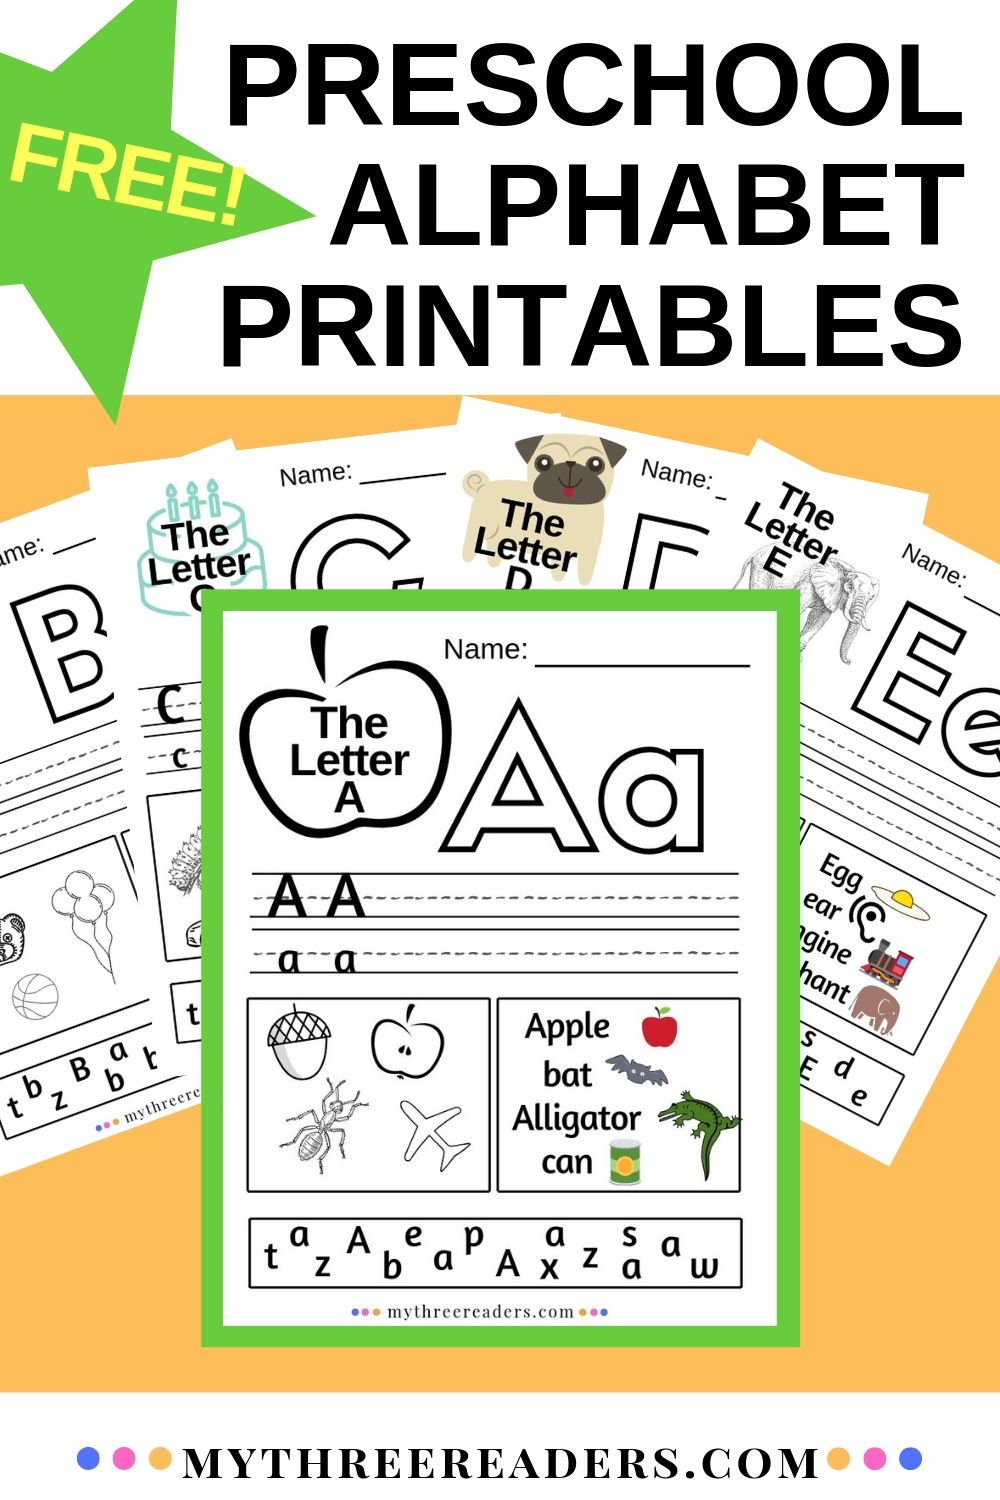 - Alphabet Worksheets A-Z ABC Printables For Preschool